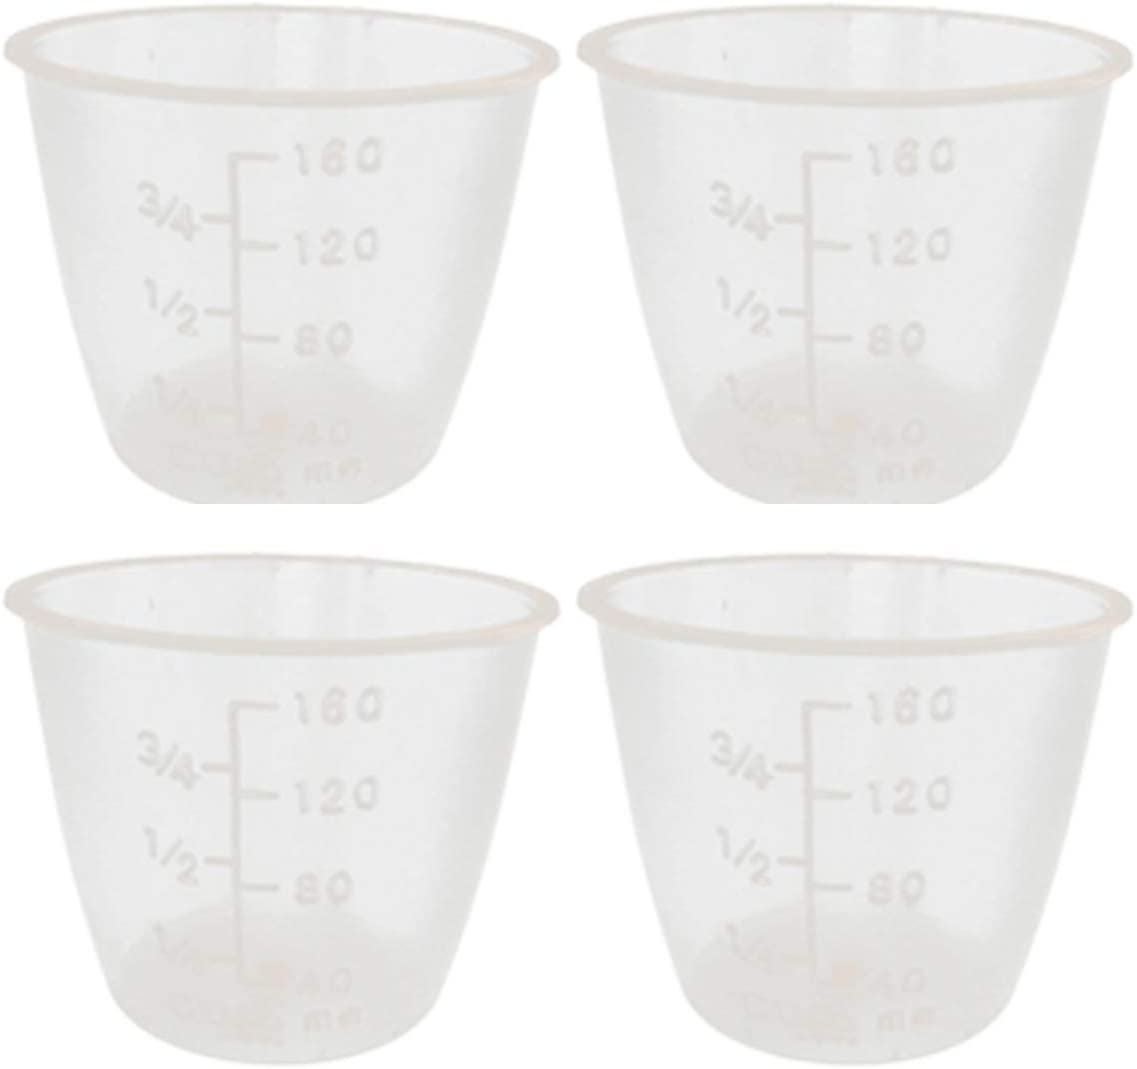 Useful 10 Pcs Food Grade Plastic Rice Measuring Cup Rice Cooker Measurement Tools for Dry and Liquid Ingredients (160ml)